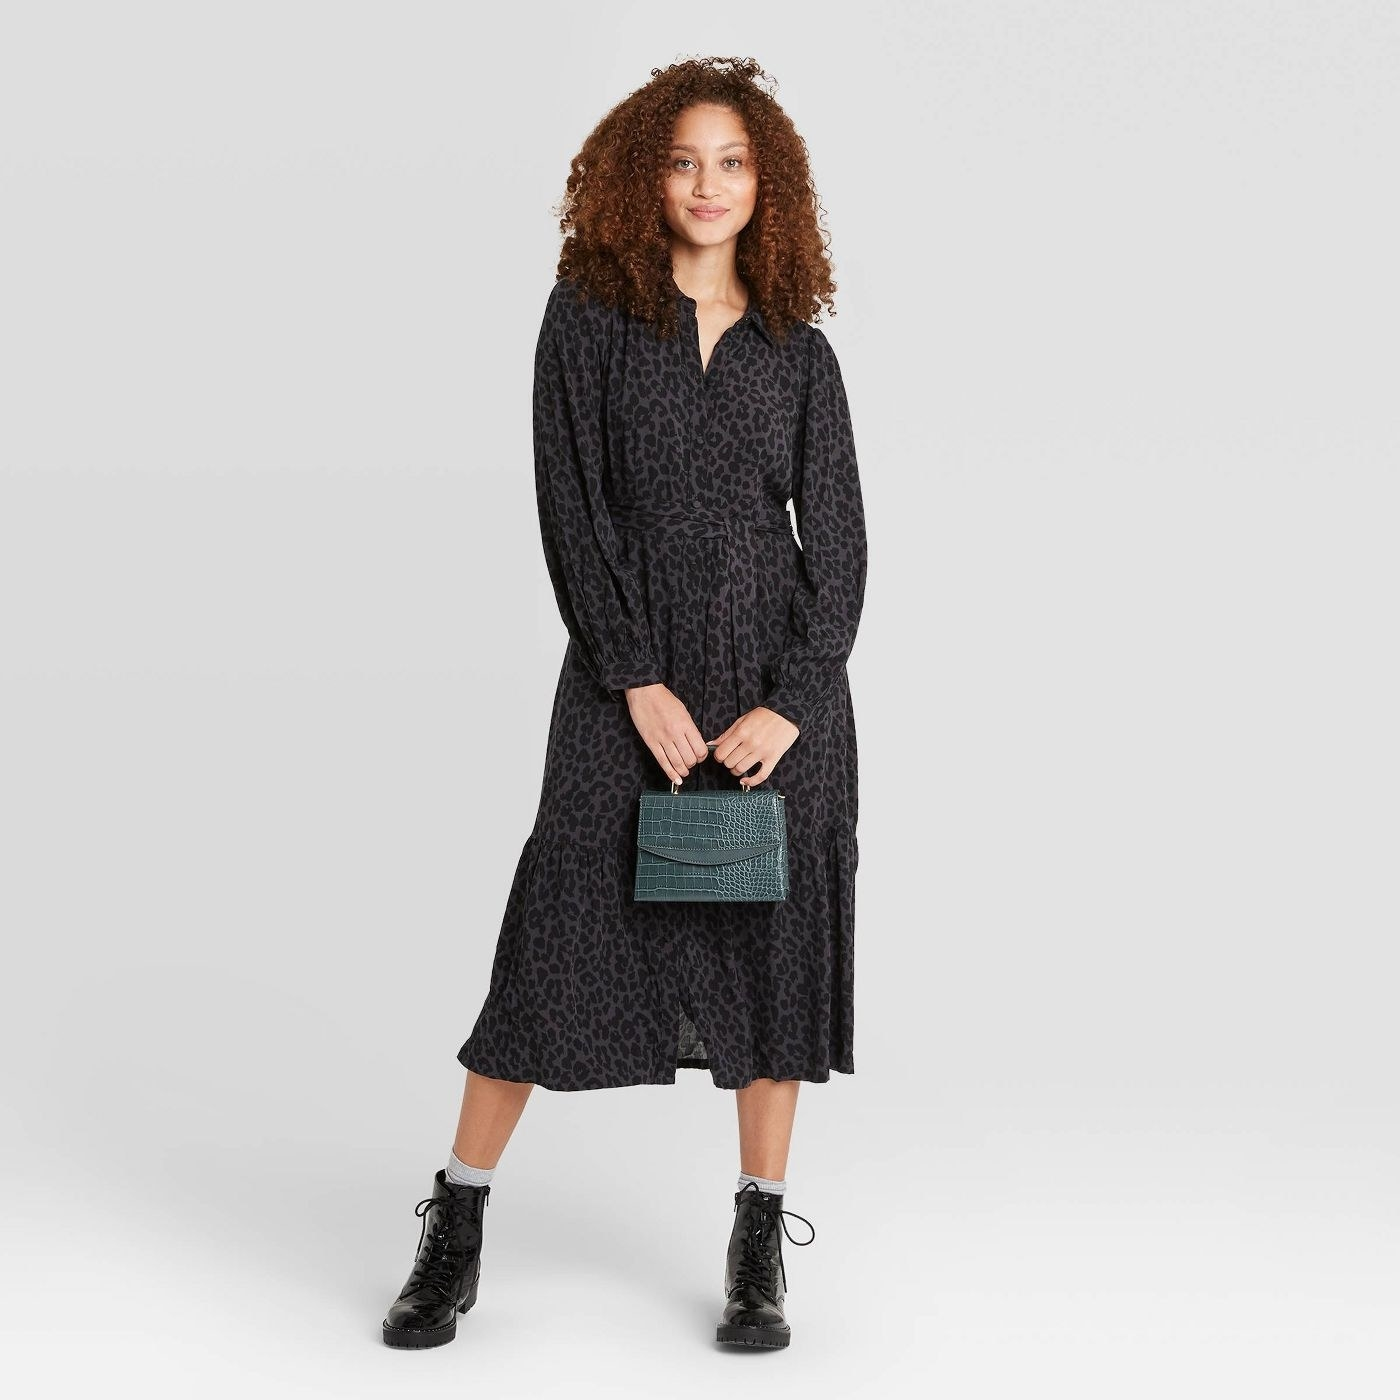 Model in long sleeve tie waist shirtdress